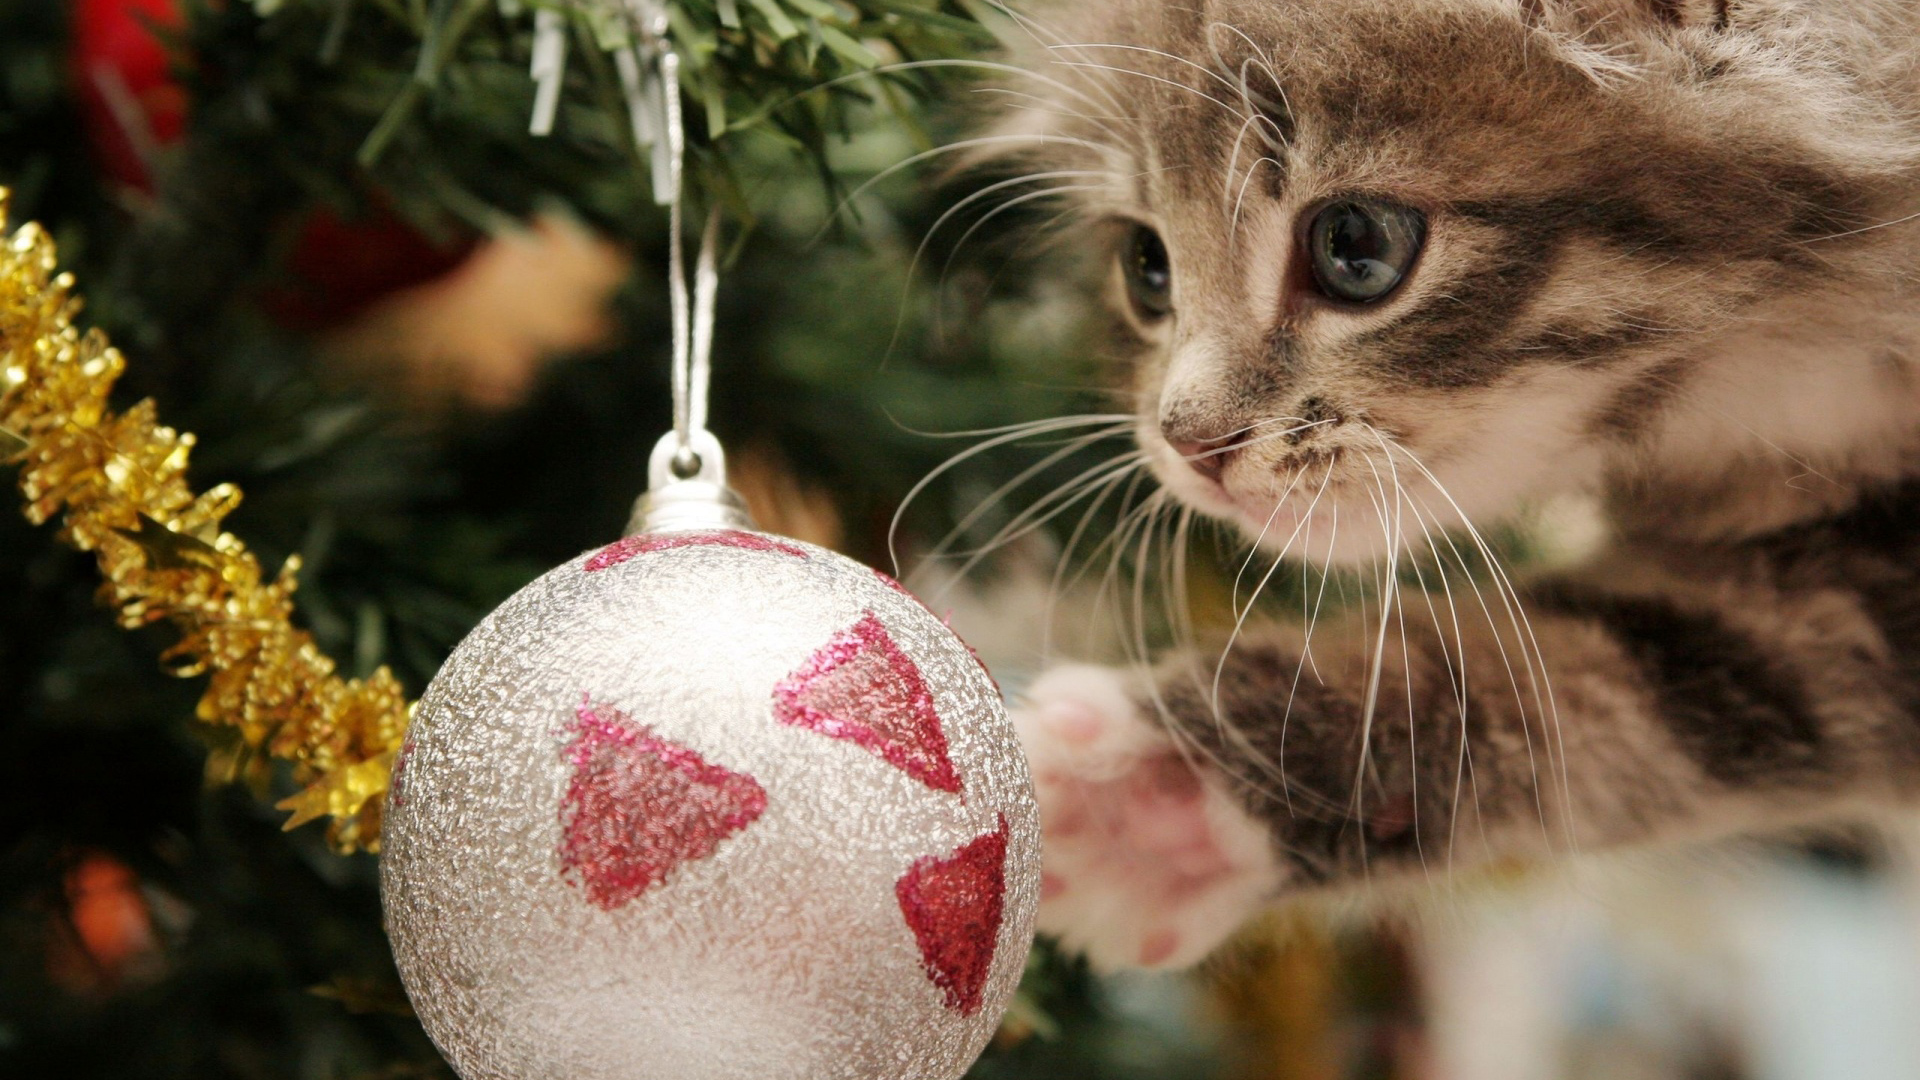 Christmas Wallpaper Cute Kitten